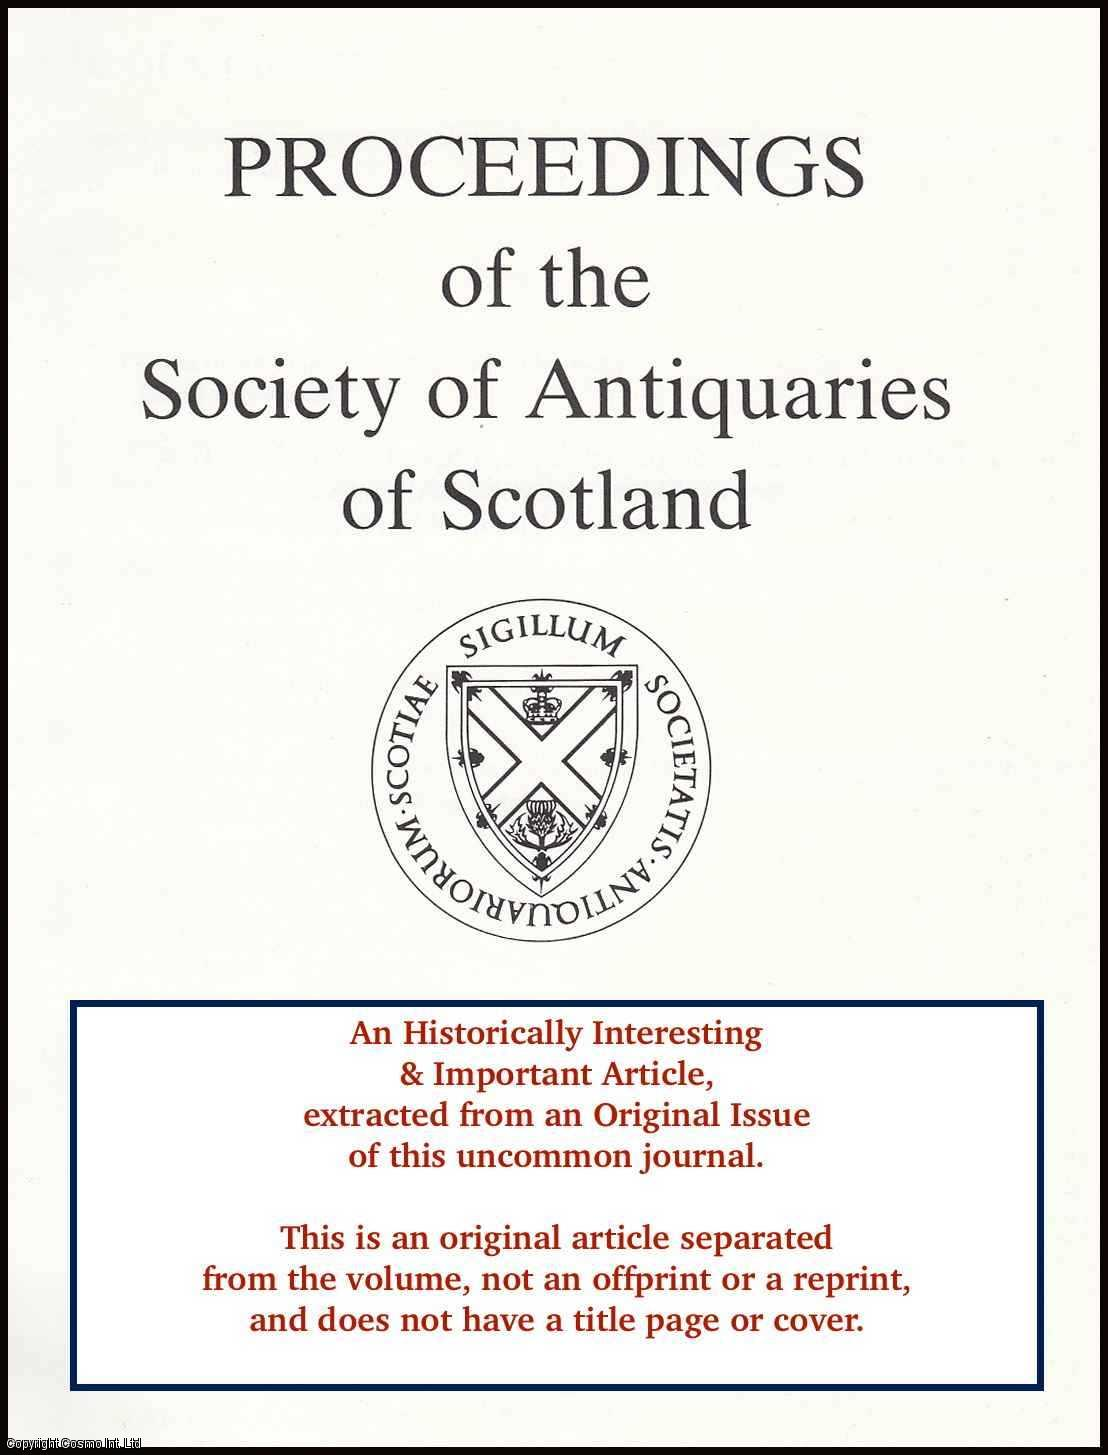 ELLIOT & MARTIN HENIG, J. WALTER - Further Engraved Gemstones From Newstead (Trimontium), Roxburghshire. An original article from the Proceedings of the Society of Antiquaries of Scotland, 1999.